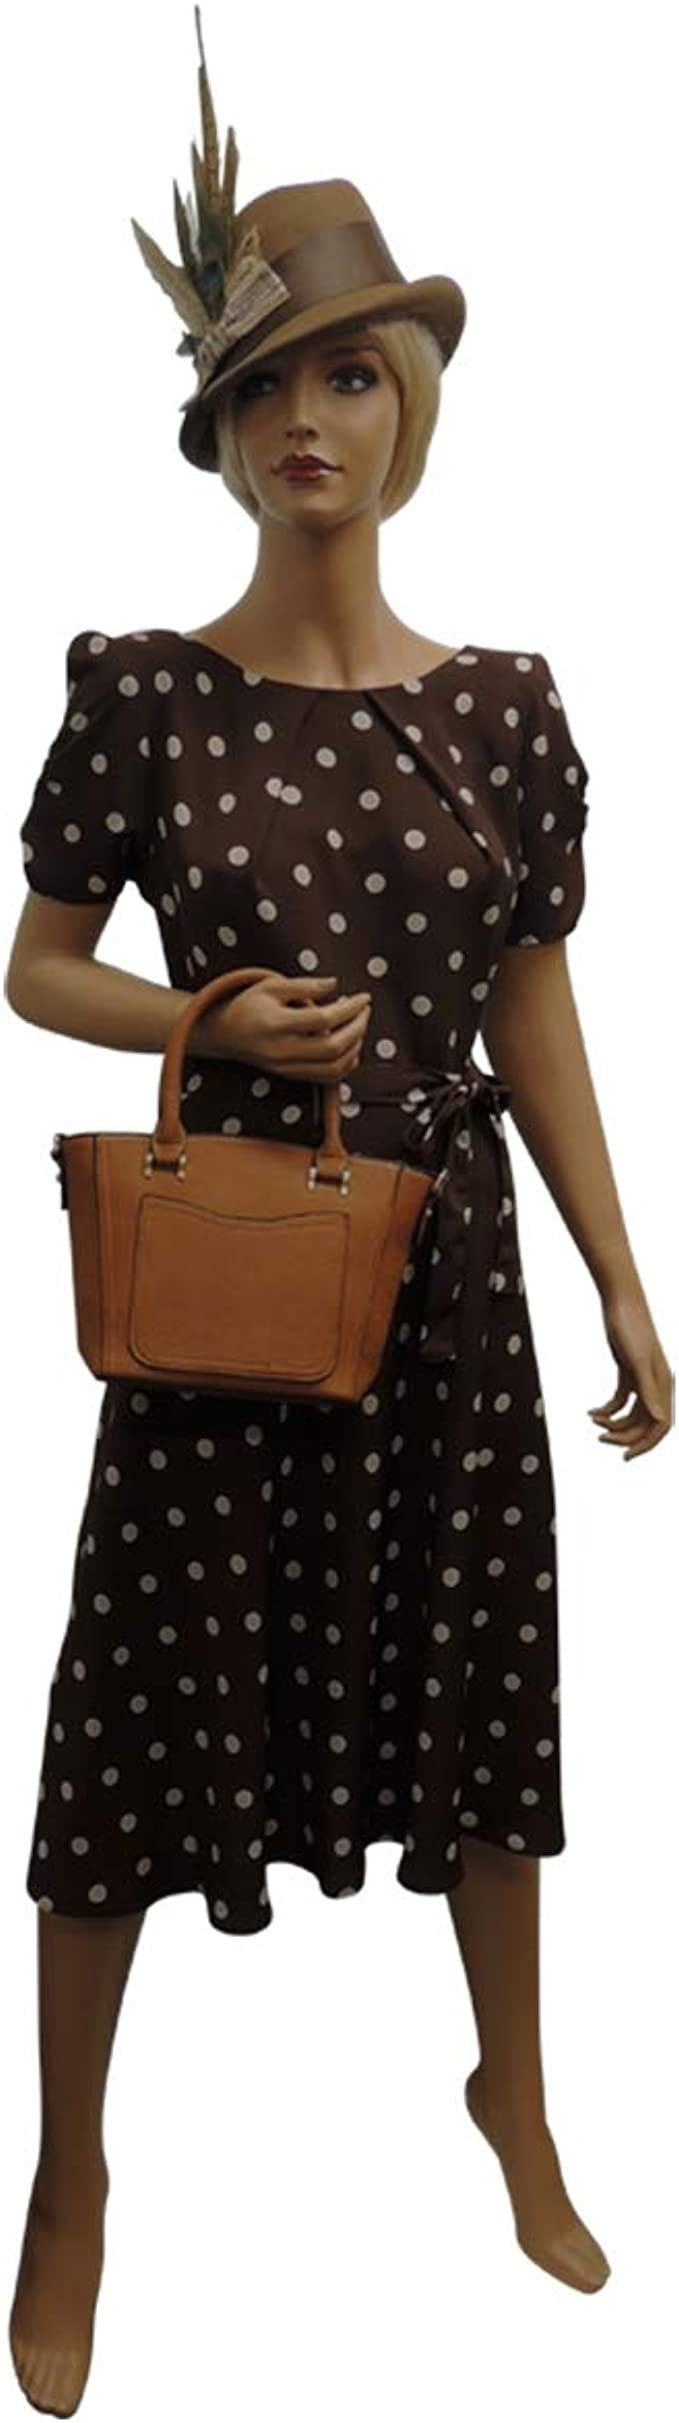 1940s Dress Styles New Ladies Brown Polka Dot WWII 1930s 40s Vintage Style Wartime Tea Dress £32.99 AT vintagedancer.com